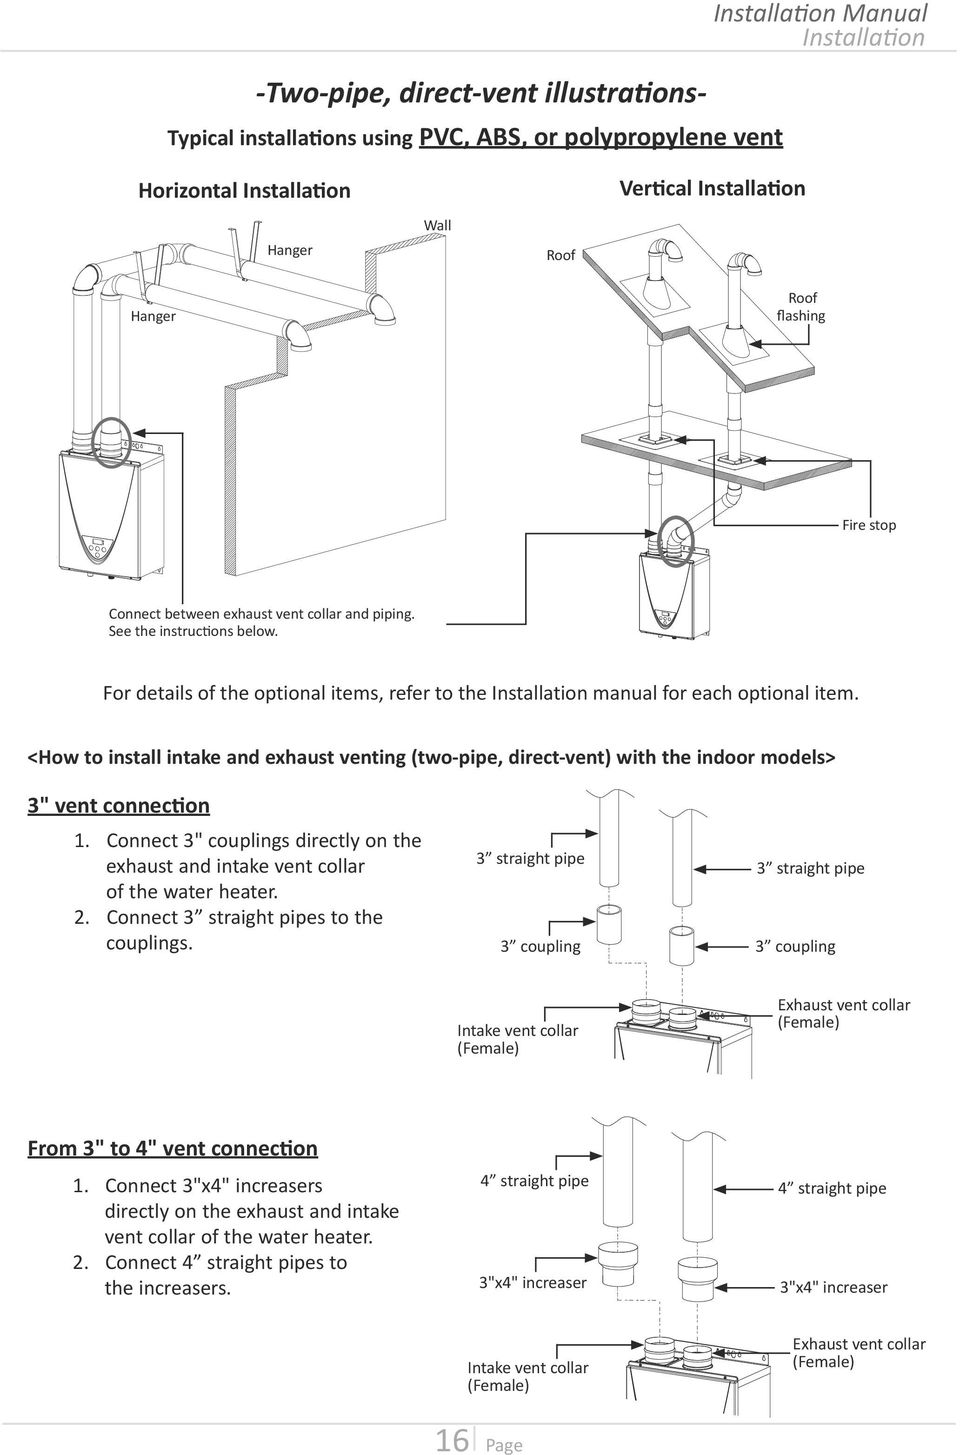 "<How to install intake and exhaust venting (two-pipe, direct-vent) with the indoor models> 3"" vent connection 1."